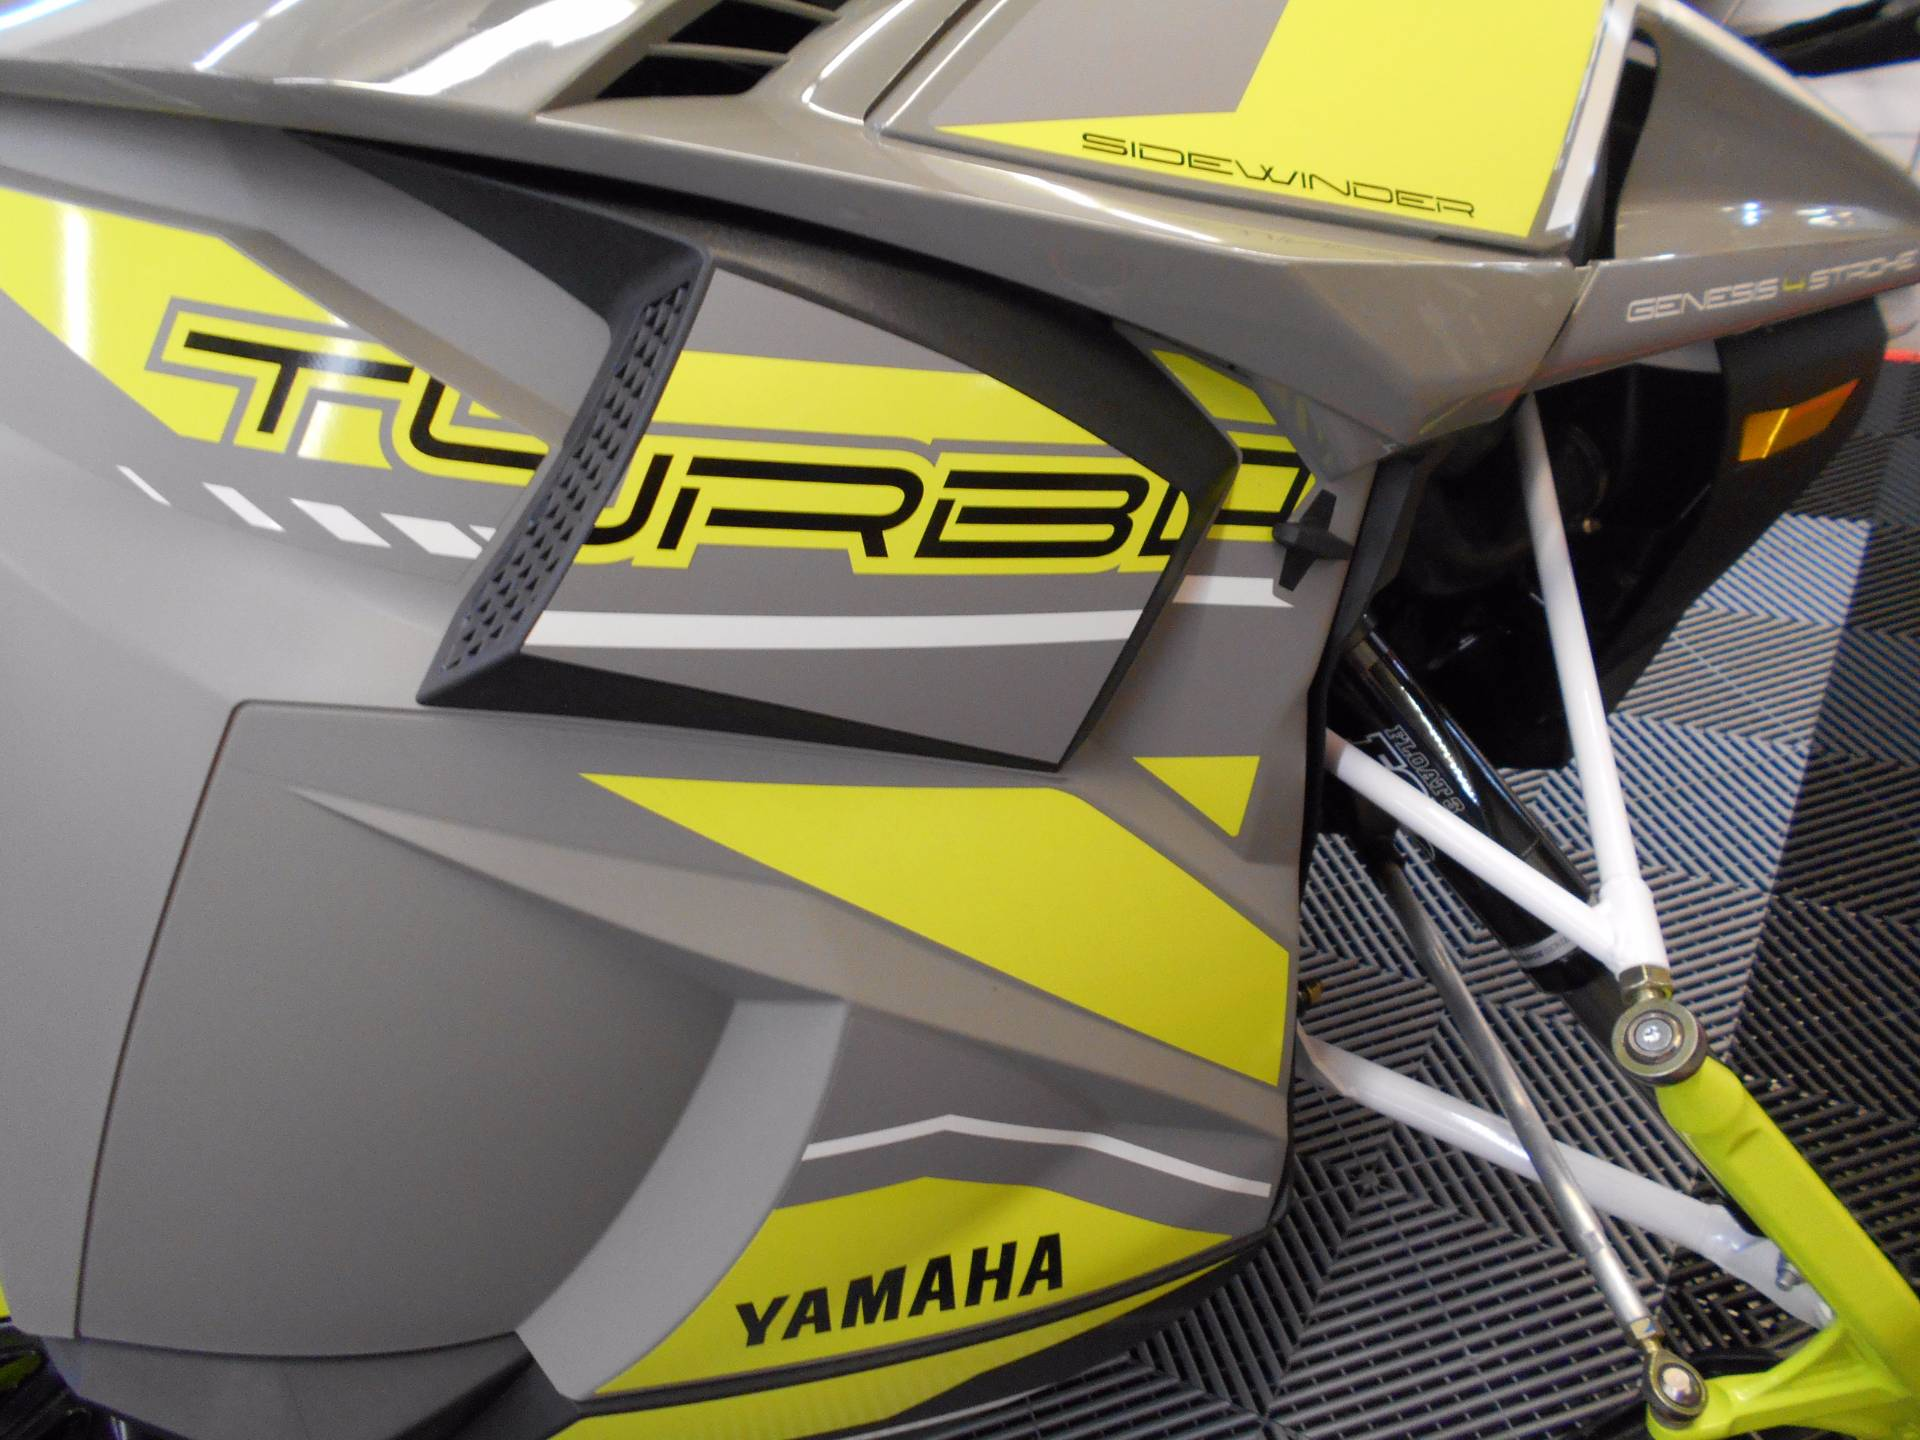 2018 Yamaha Sidewinder B-TX SE 153 1.75 in Belvidere, Illinois - Photo 6